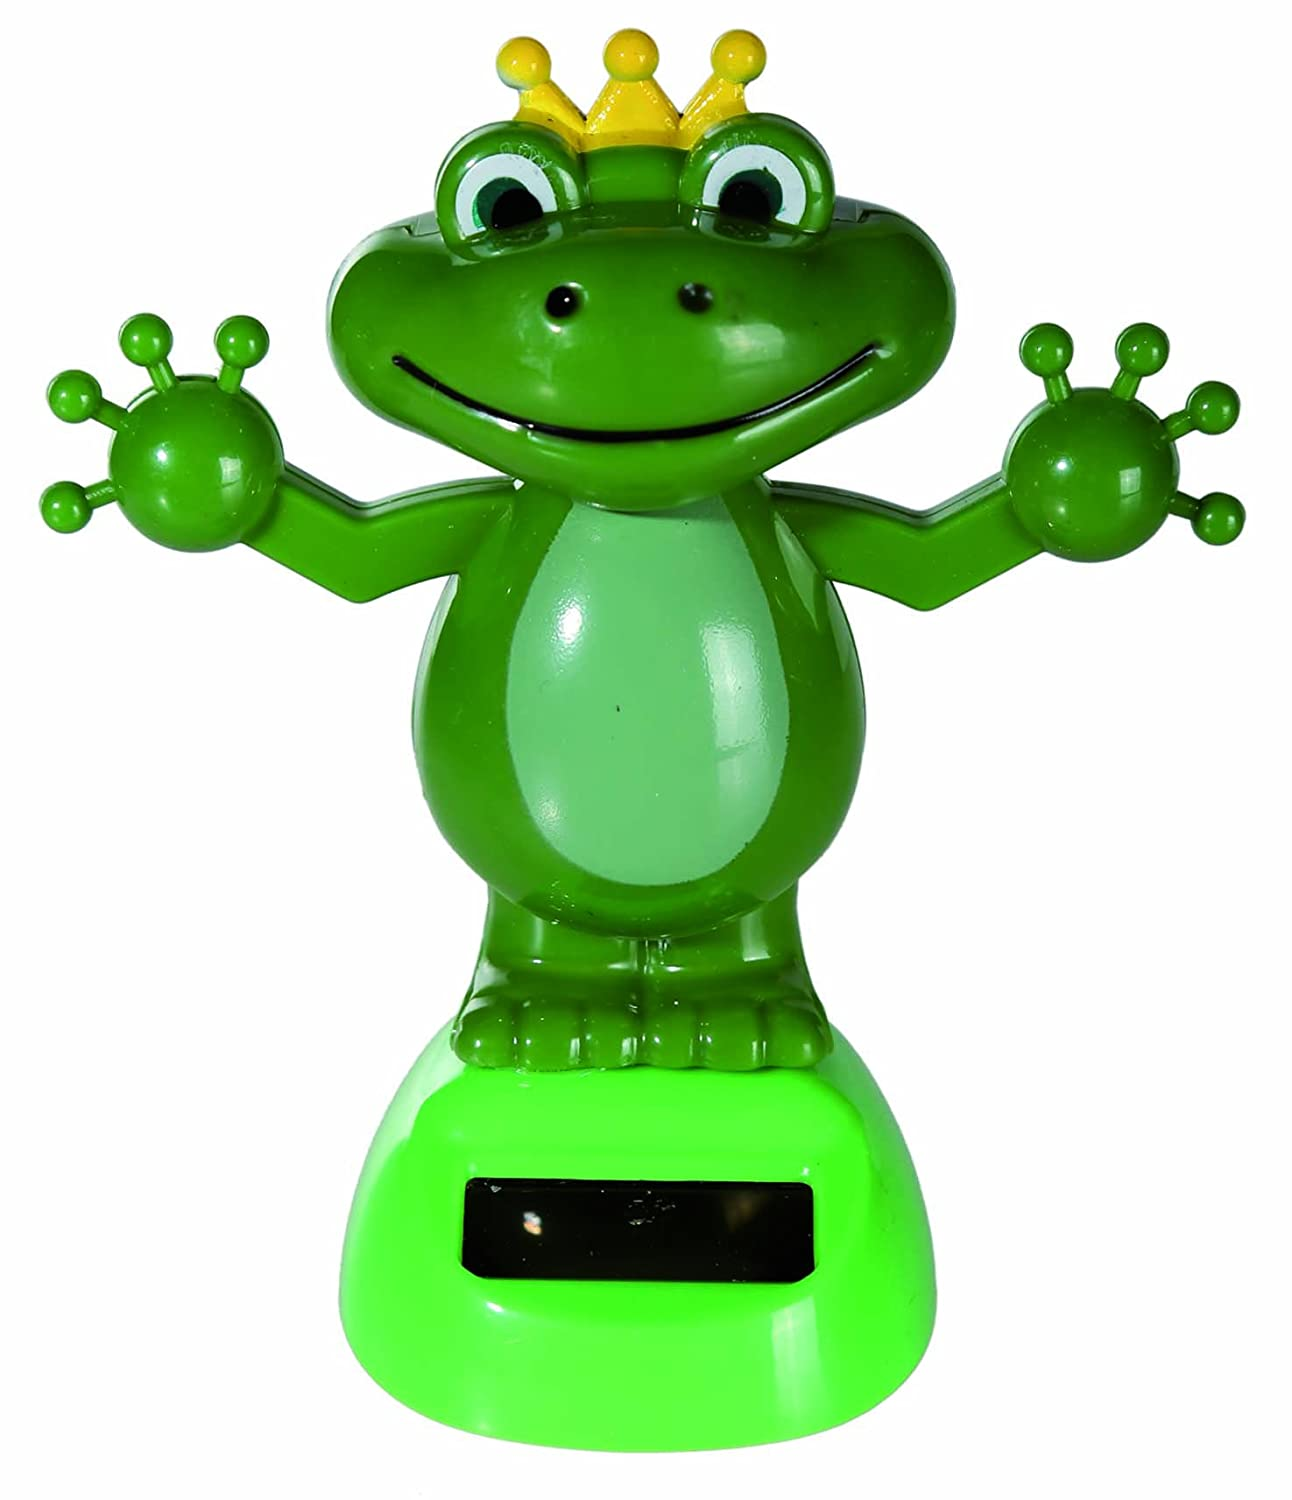 Good Value Retro Desktop Toys Solar Powered Dancing Moving Frog With Crown Figurine - Girl Girls Children Kids - Ideal For Birthdays, Easter, Christmas, Xmas, Stocking Fillers Fun Present Gift Age 5+ - One Supplied Kenzies Gifts